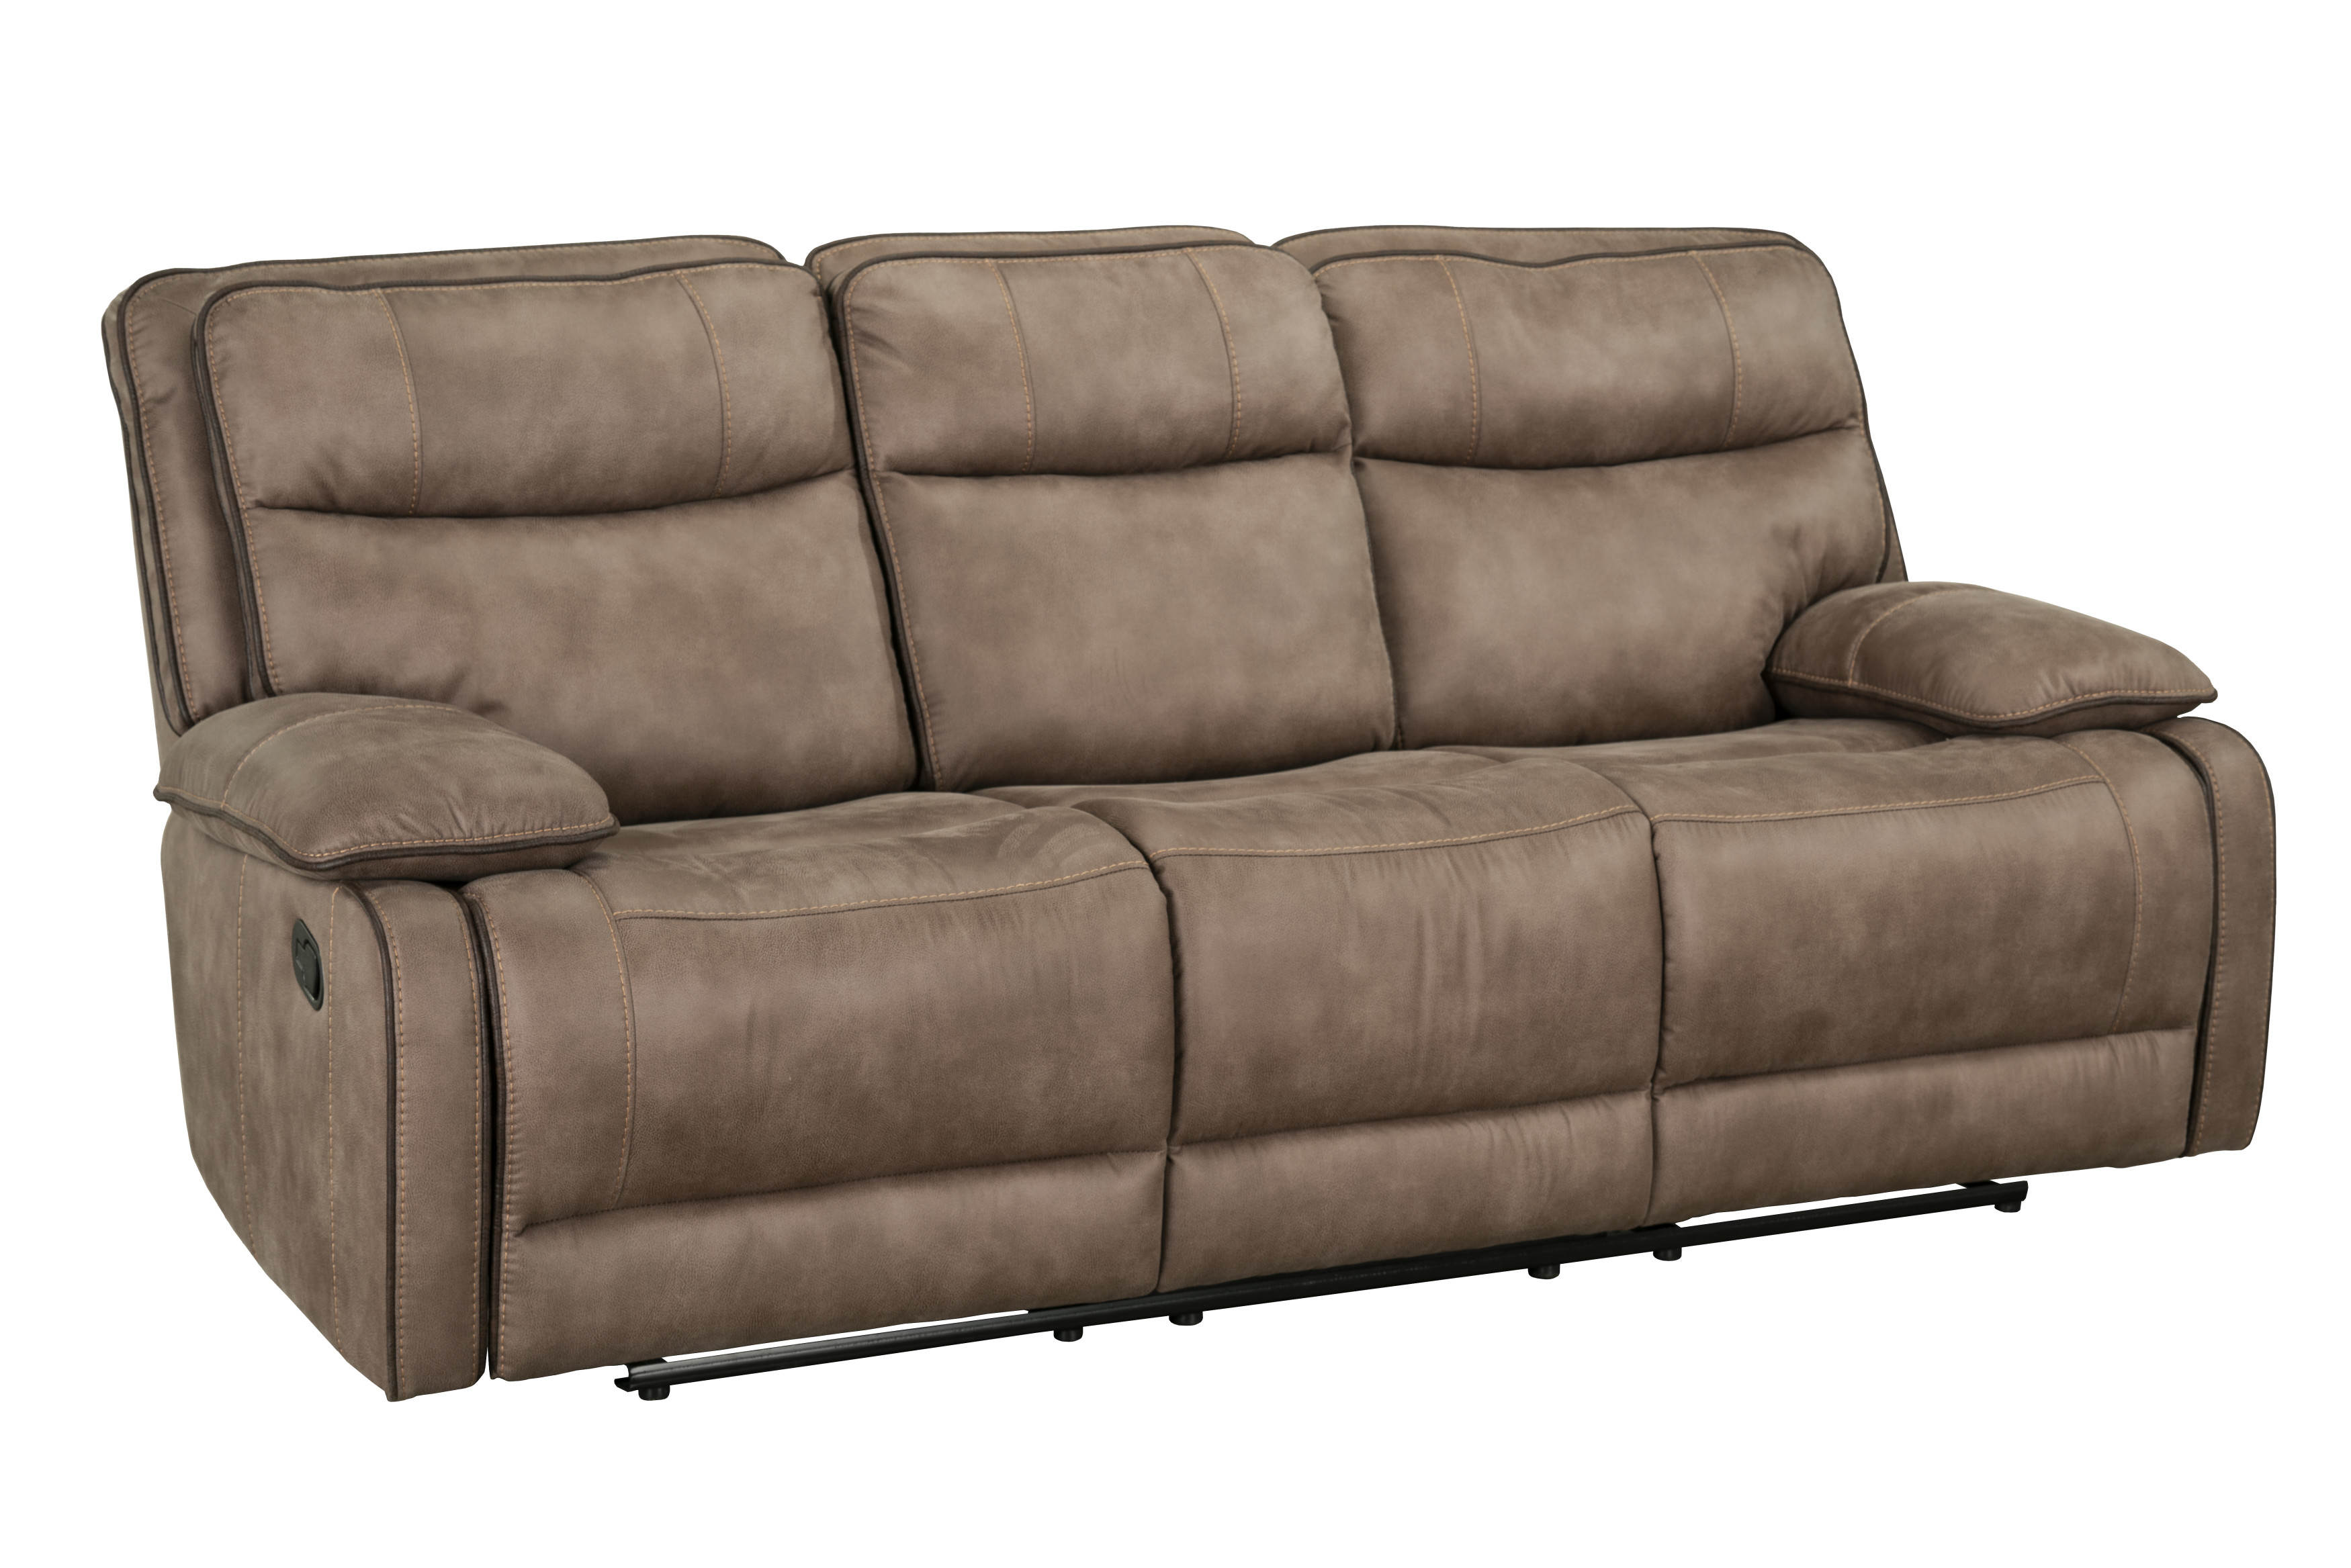 Standard Furniture Colleton Beige Manual Reclining Sofa Click To Enlarge